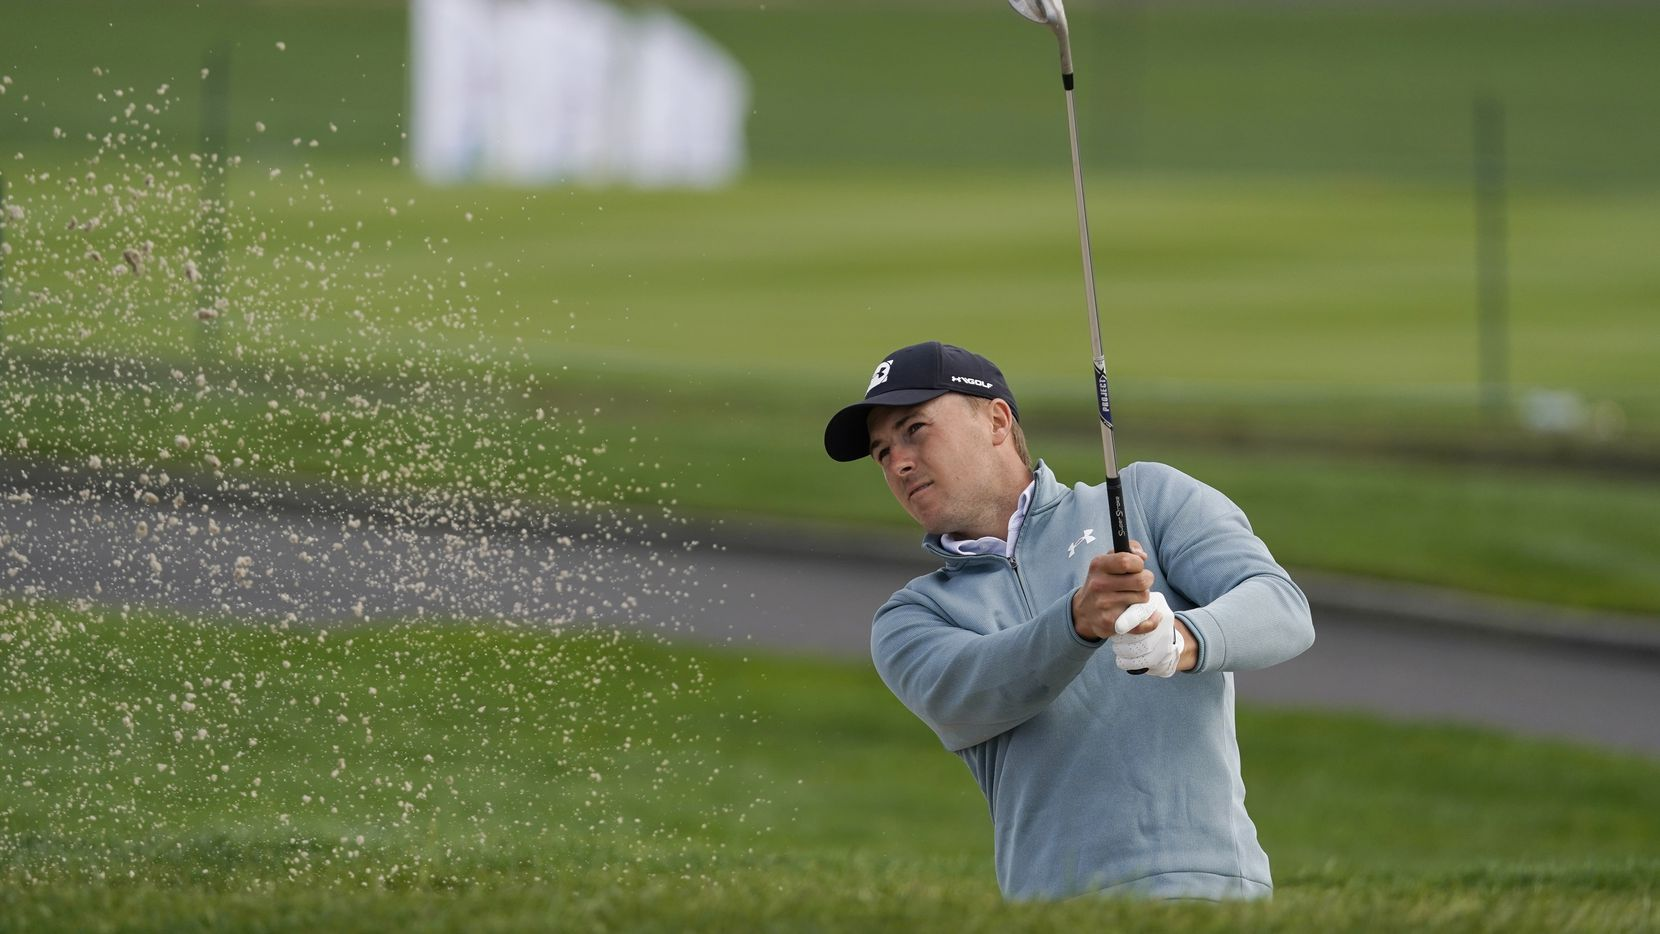 Jordan Spieth follows his shot out of a bunker onto the sixth green of the Pebble Beach Golf Links during the third round of the AT&T Pebble Beach Pro-Am golf tournament Saturday, Feb. 13, 2021, in Pebble Beach, Calif.